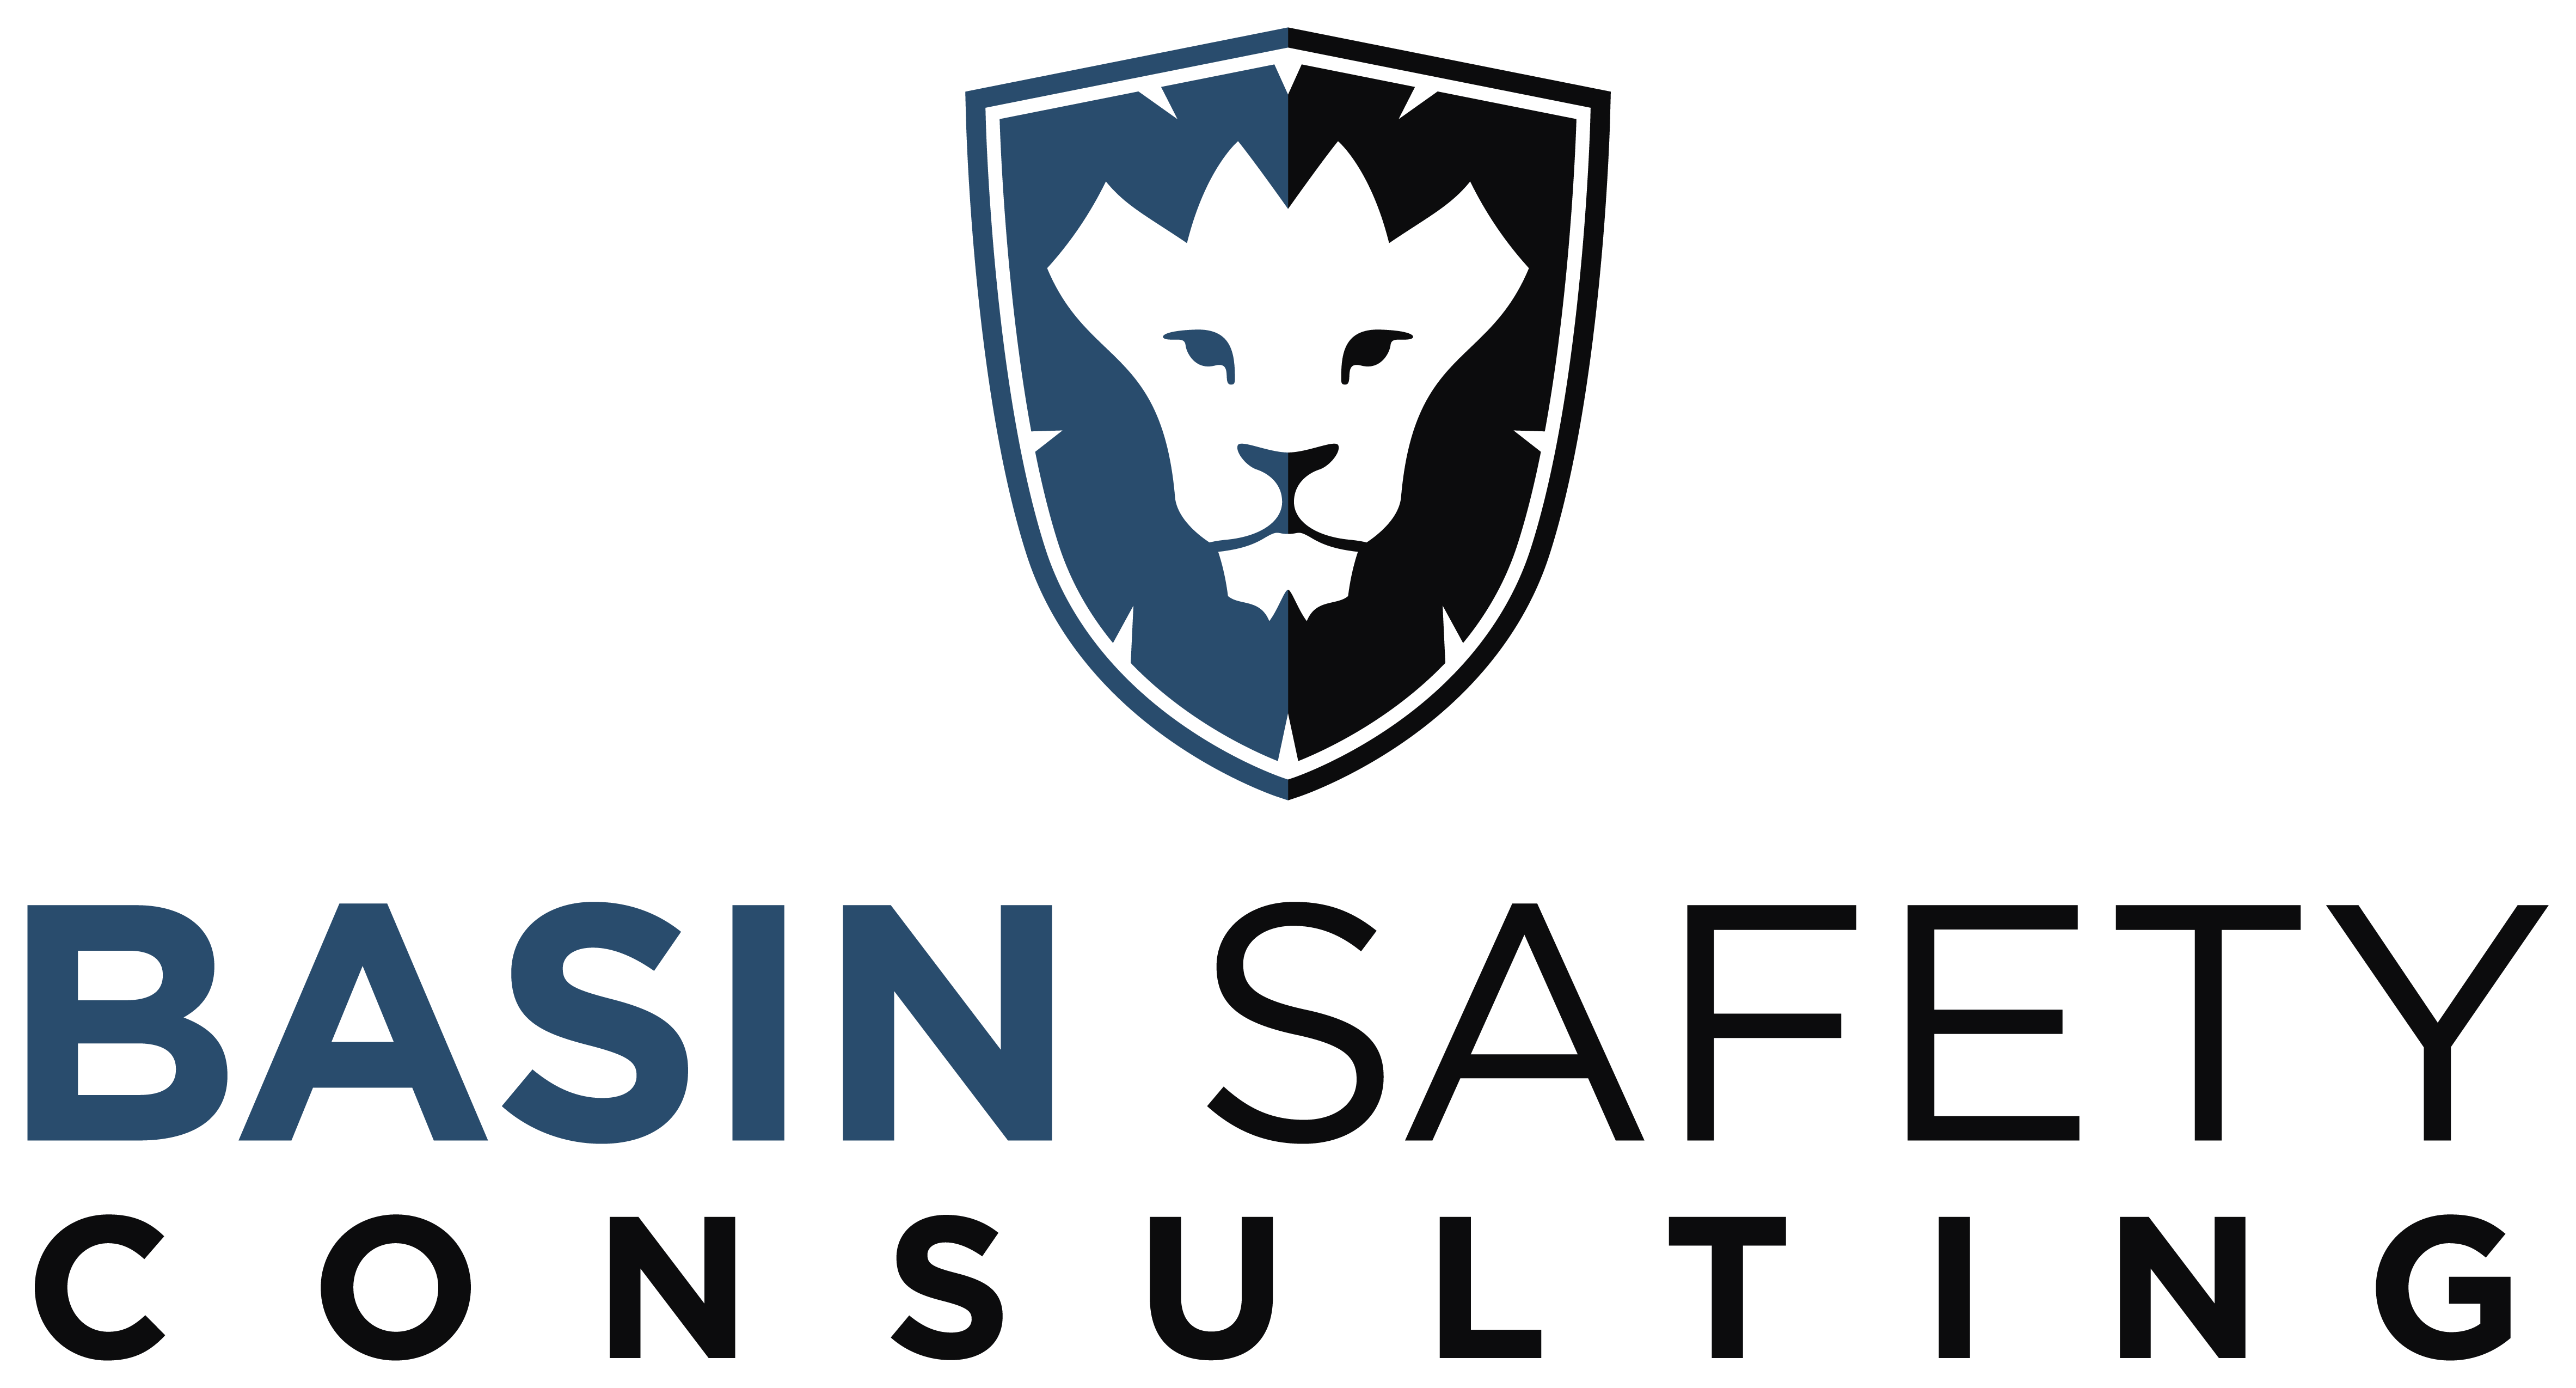 ... employment application basin safety consulting online employment